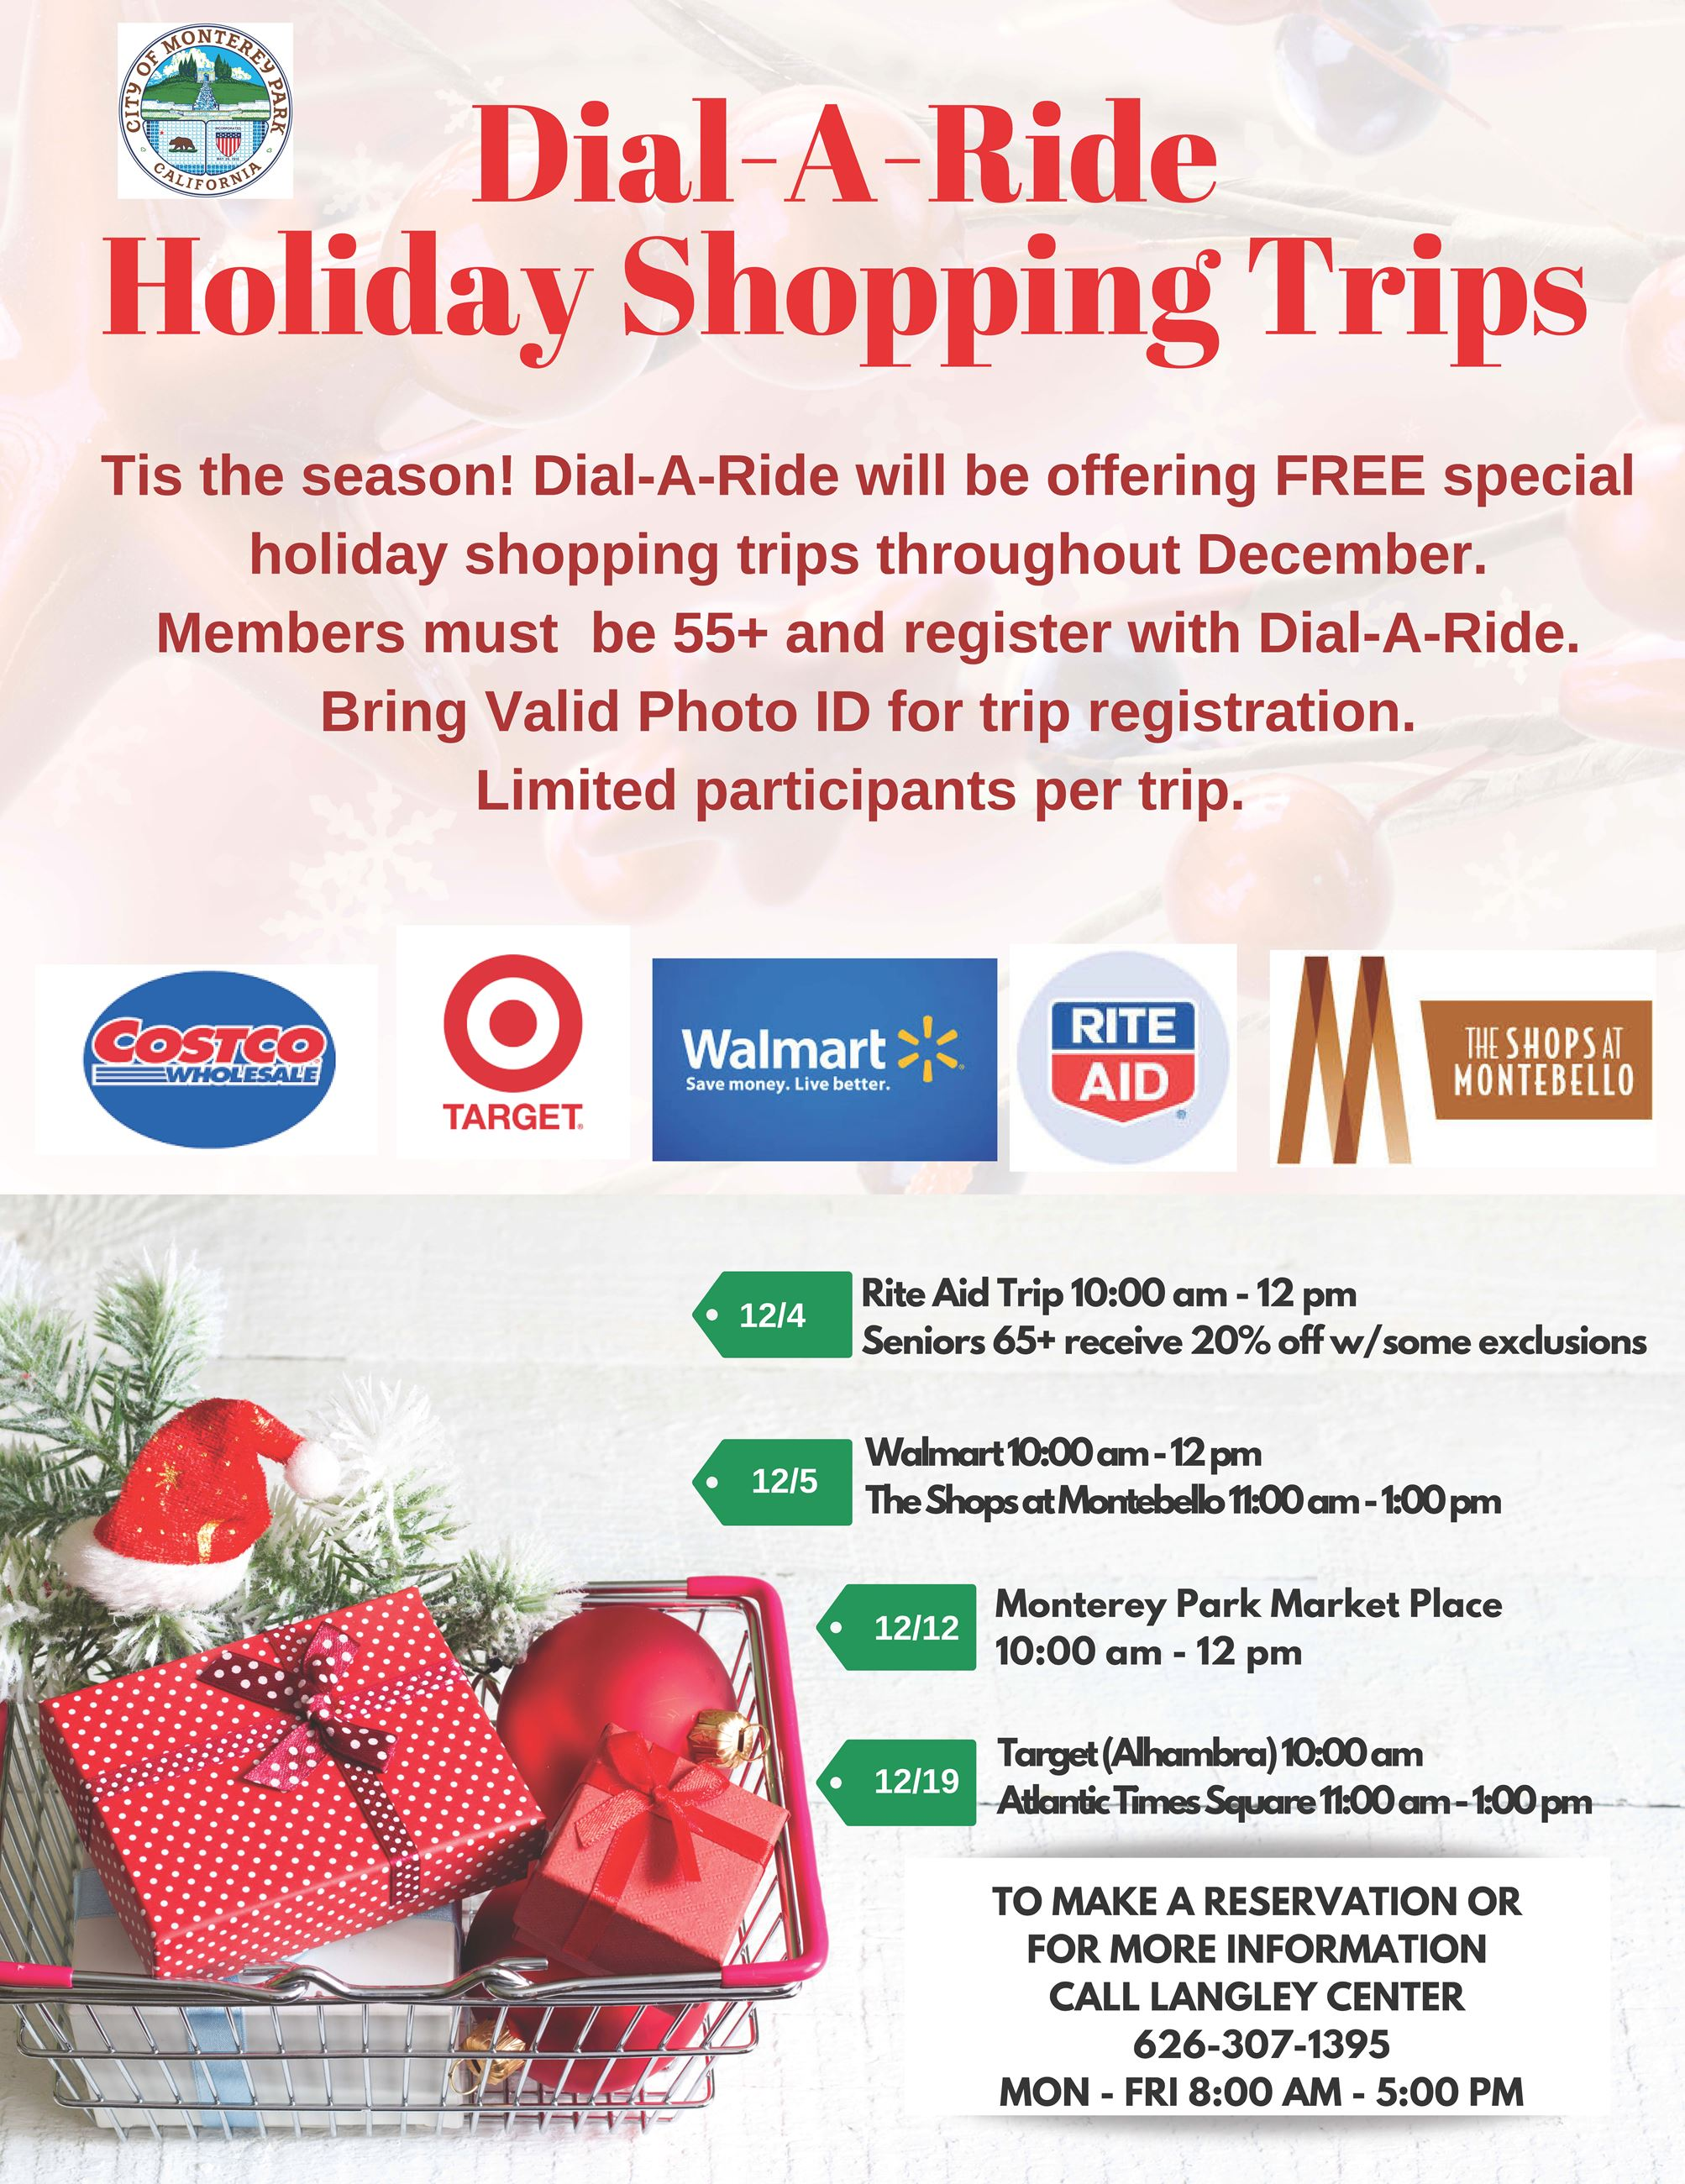 2019 DAR Holiday Shopping Trips